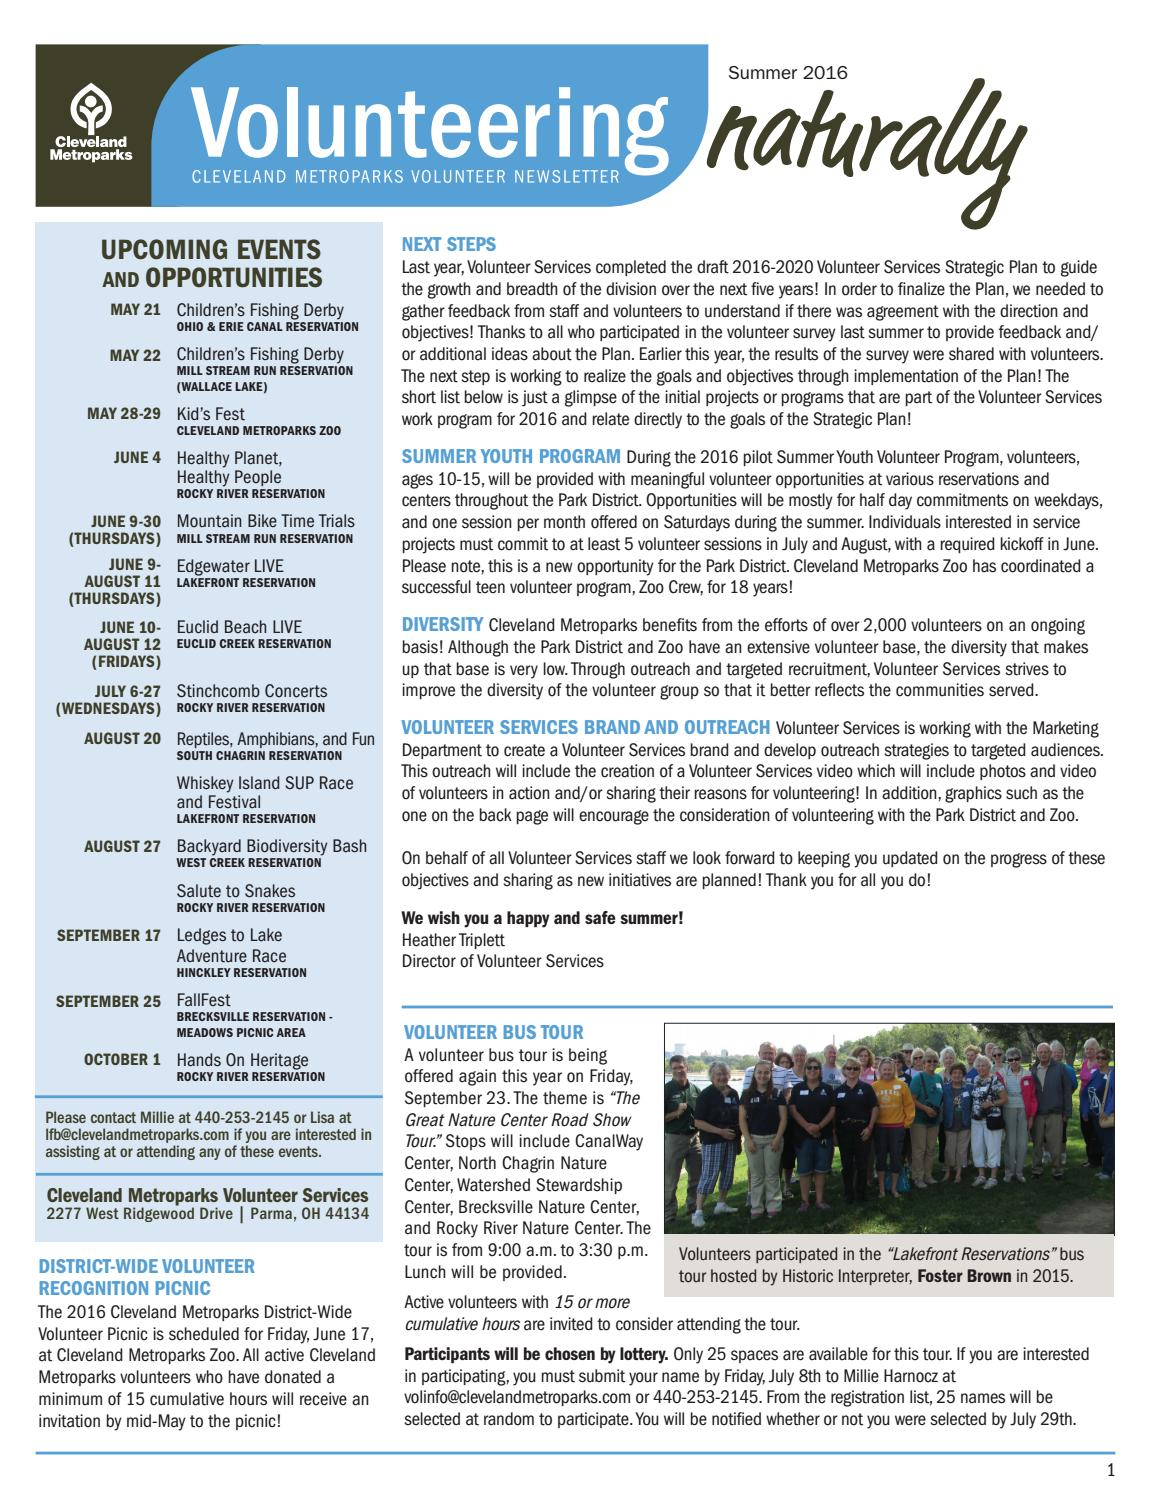 volunteering naturally summer 2016 by cleveland metroparks issuu